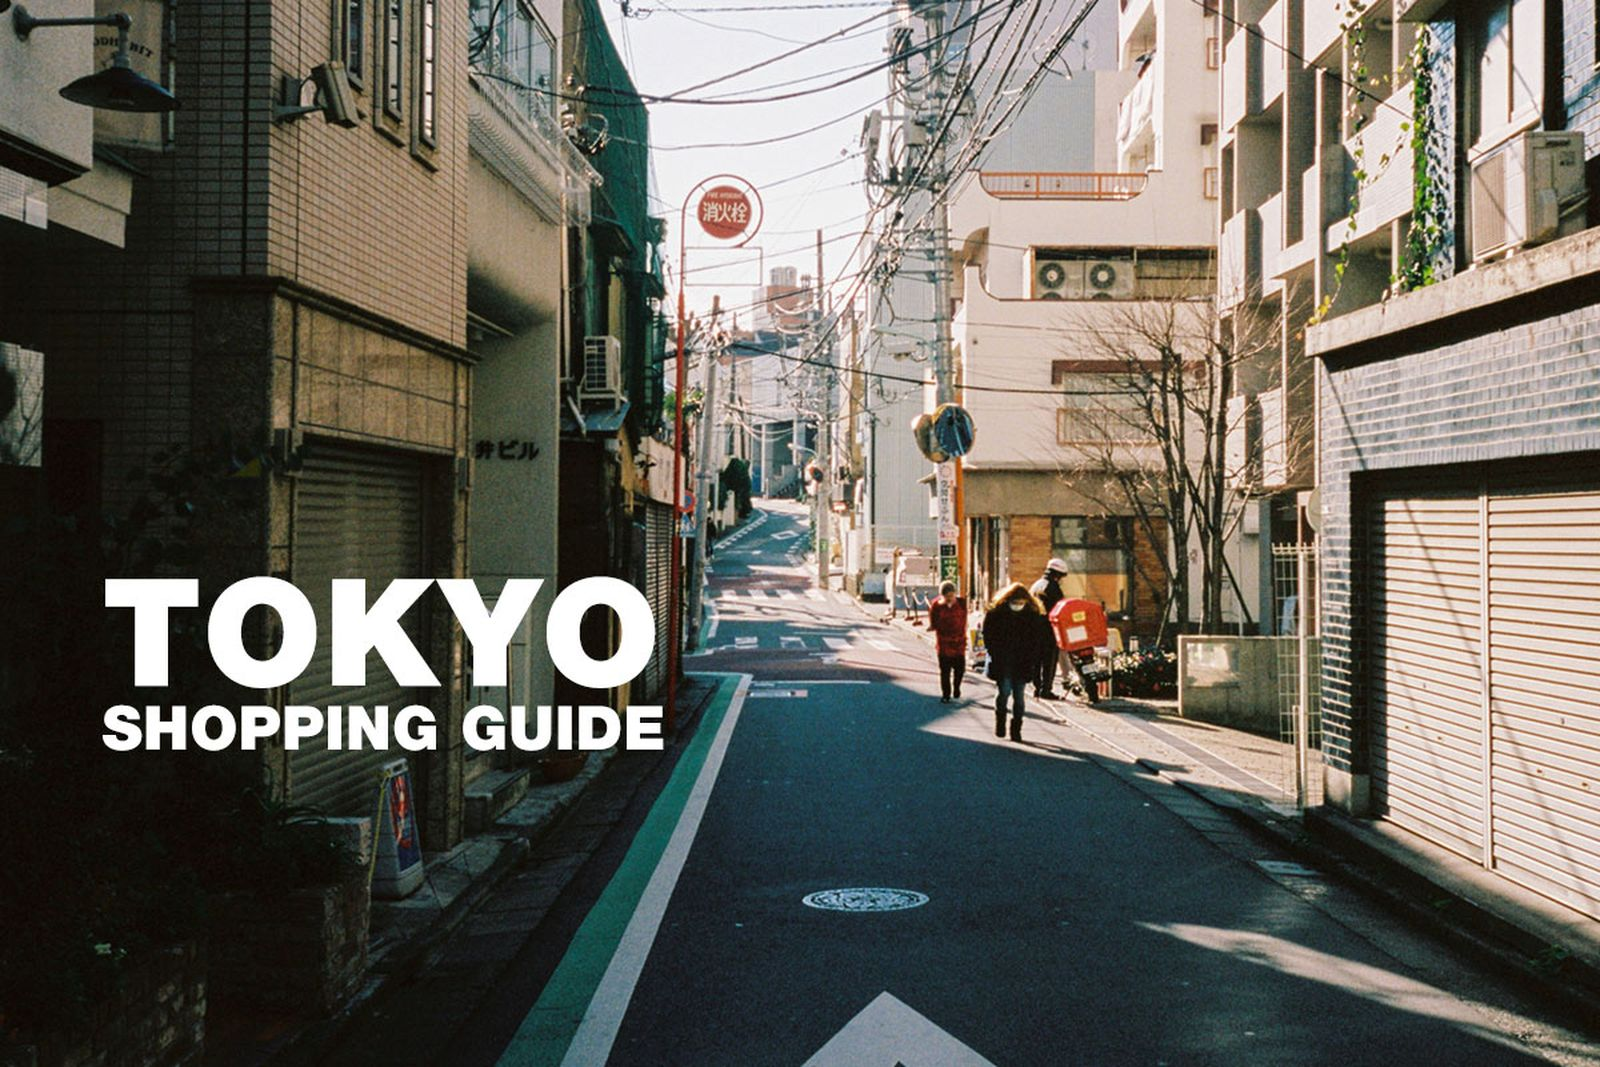 tokyo shopping guide main prov the real mccoys have a good time